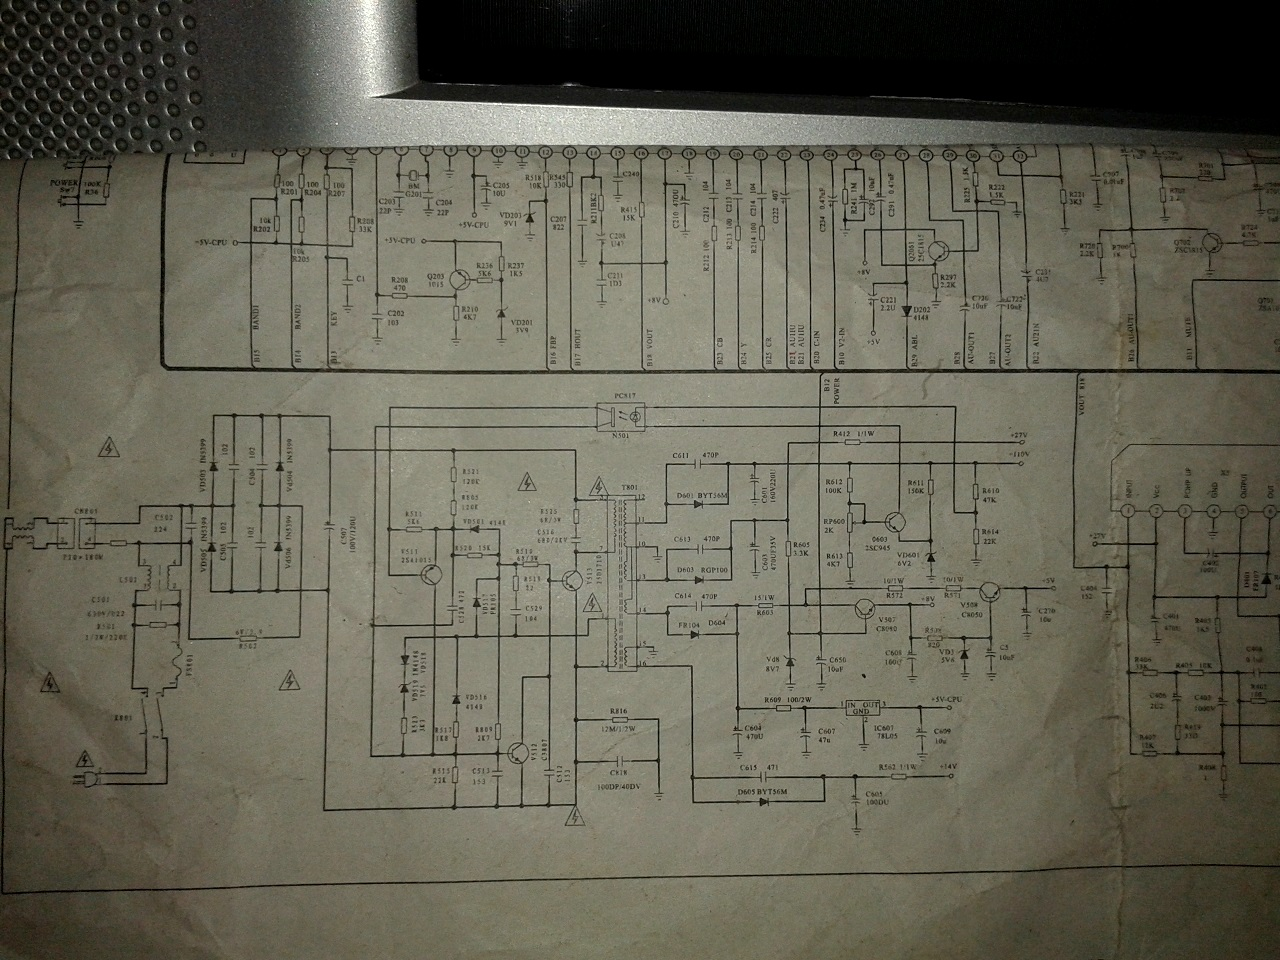 small resolution of refer the circuit diagram